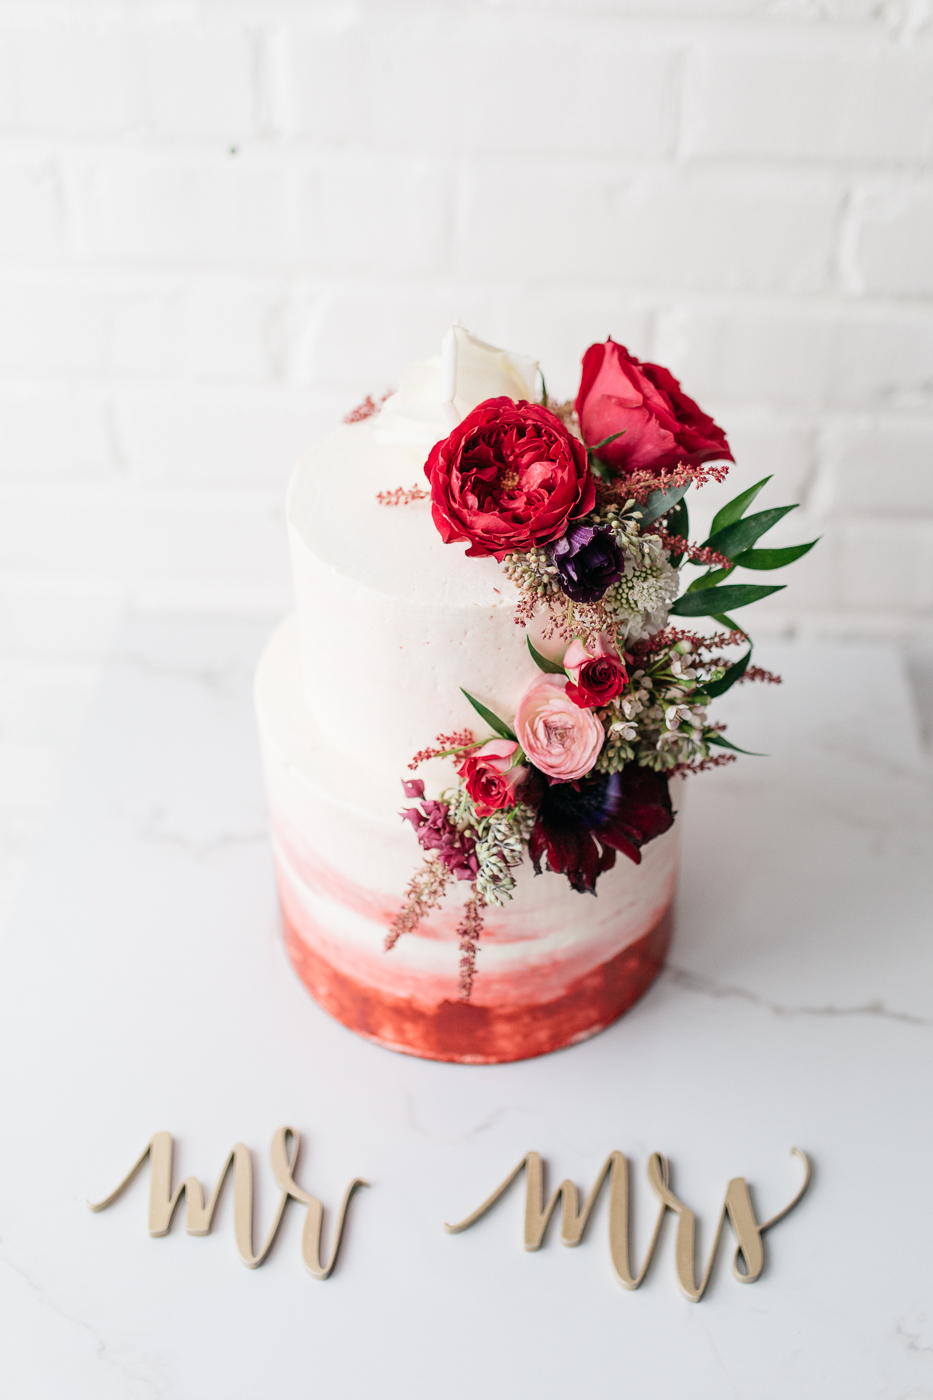 valentines-day-wedding-inspiration-with-handcrafted-elements-75.jpg